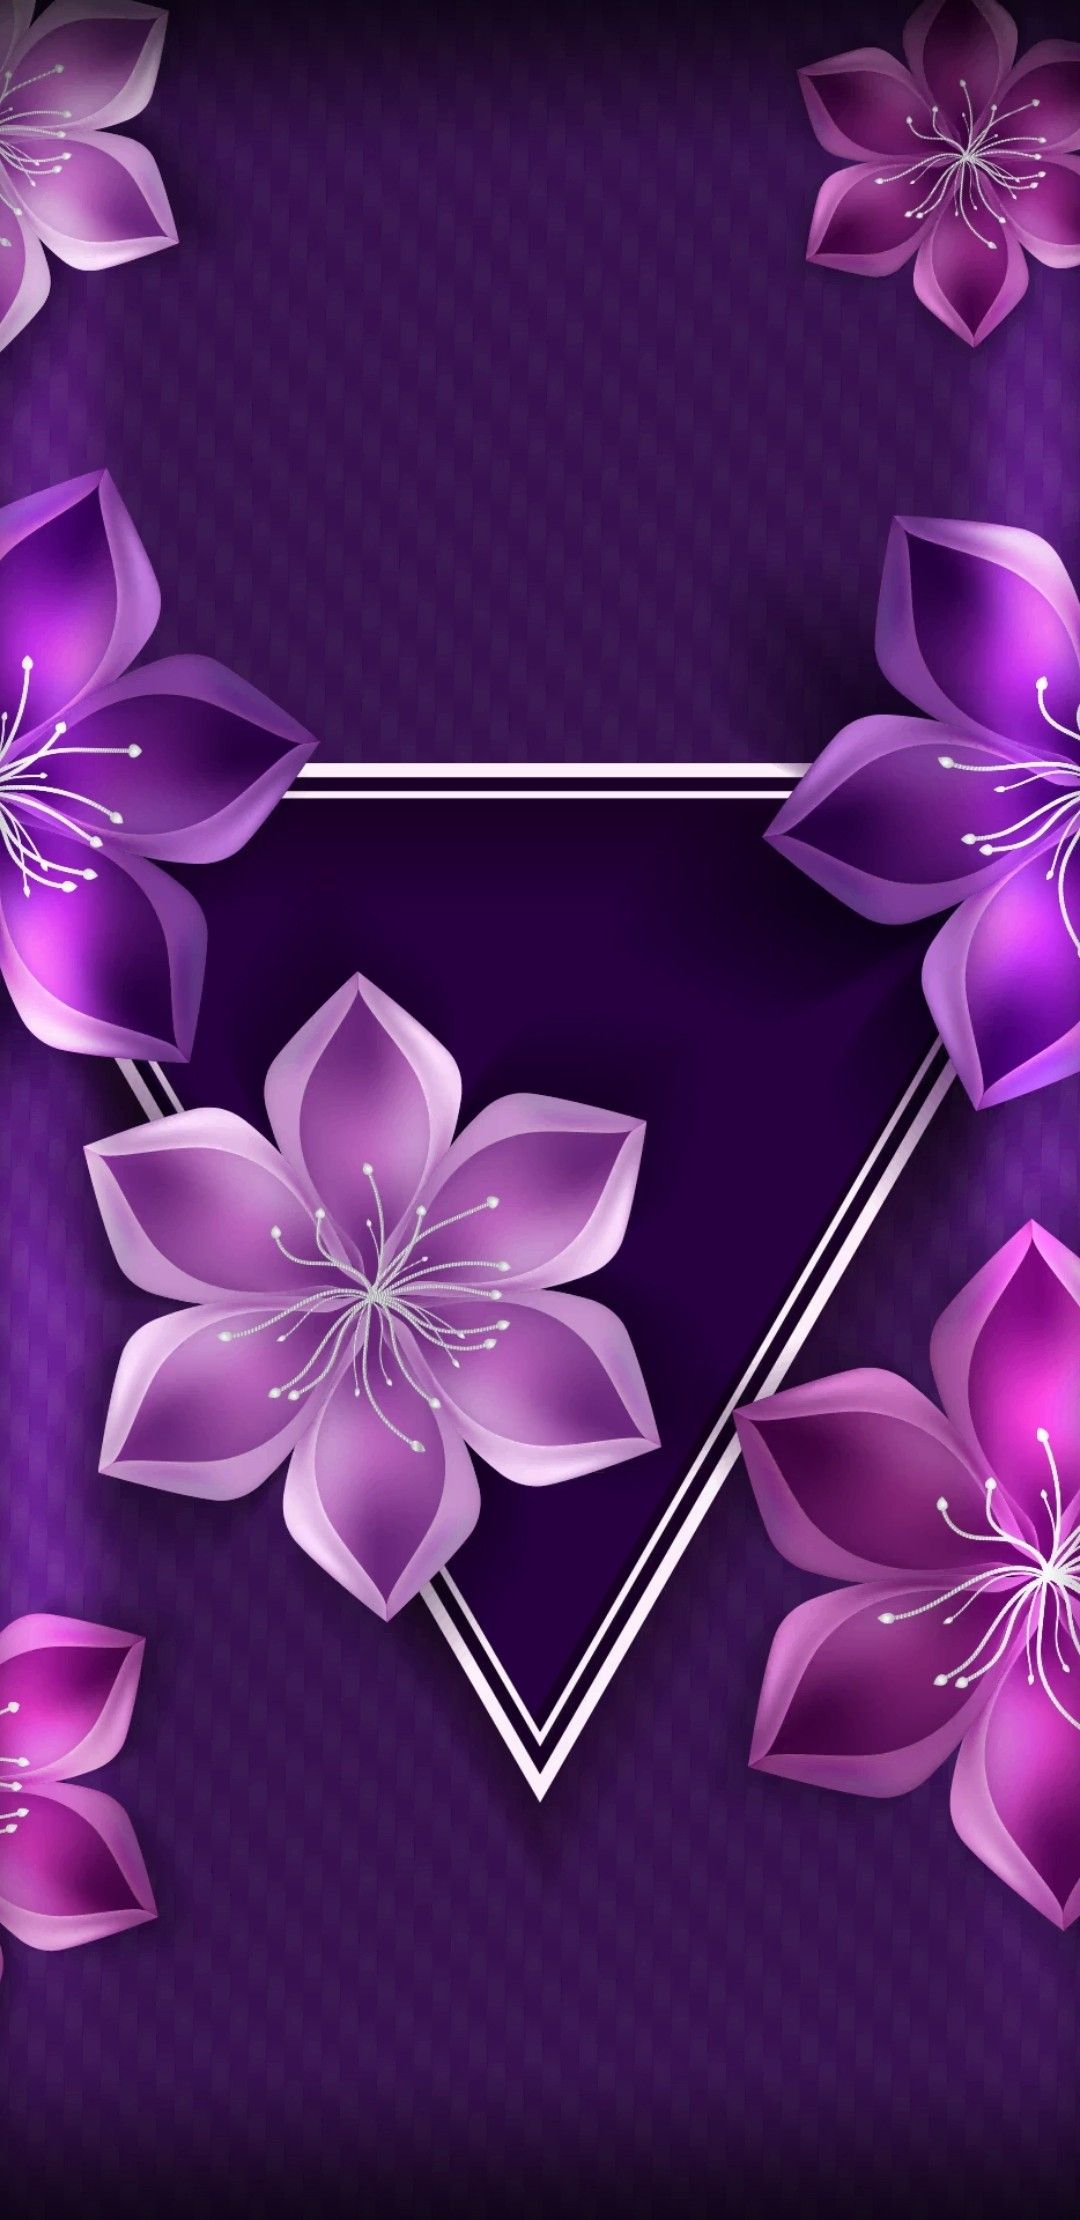 Black And Purple Purple Samsung Wallpaper Black And Purple Wallpaper Pink And Purple Wallpaper